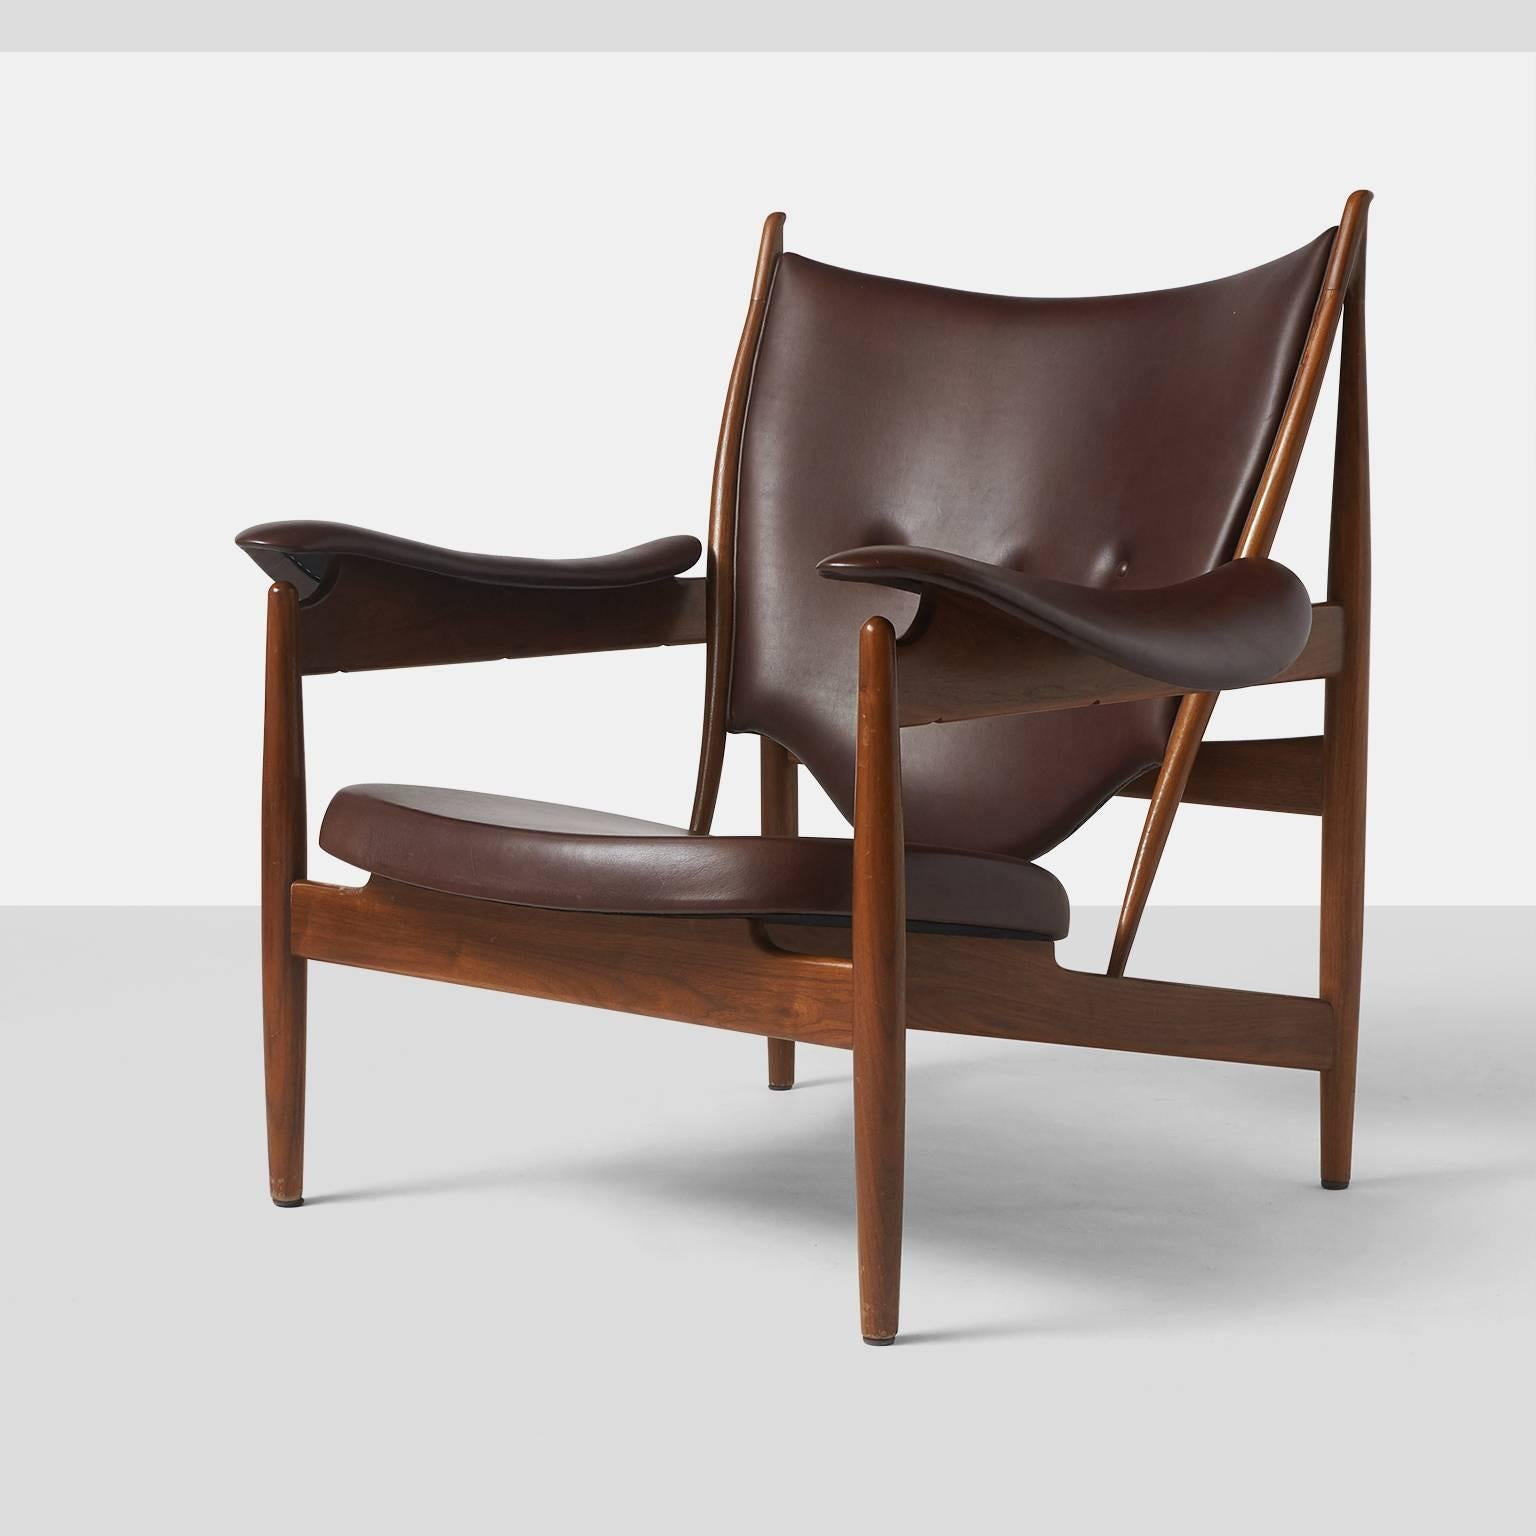 A Chieftain Chair By Finn Juhl Designed In 1951 And Manufactured By Baker  Furniture In The